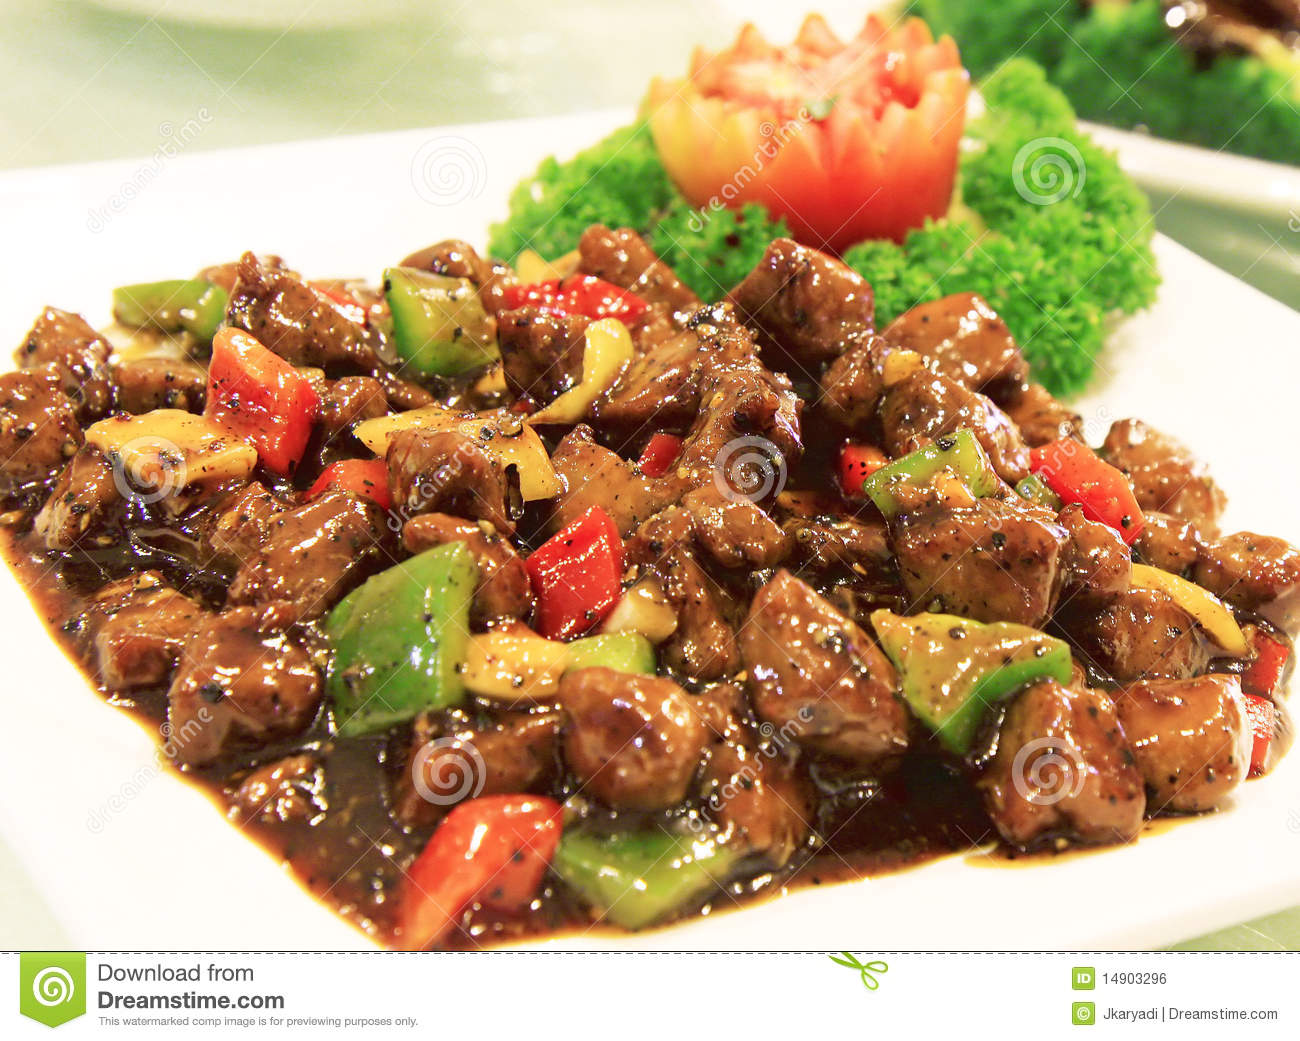 Black Pepper Beef On White Plate Royalty Free Stock Image - Image ...